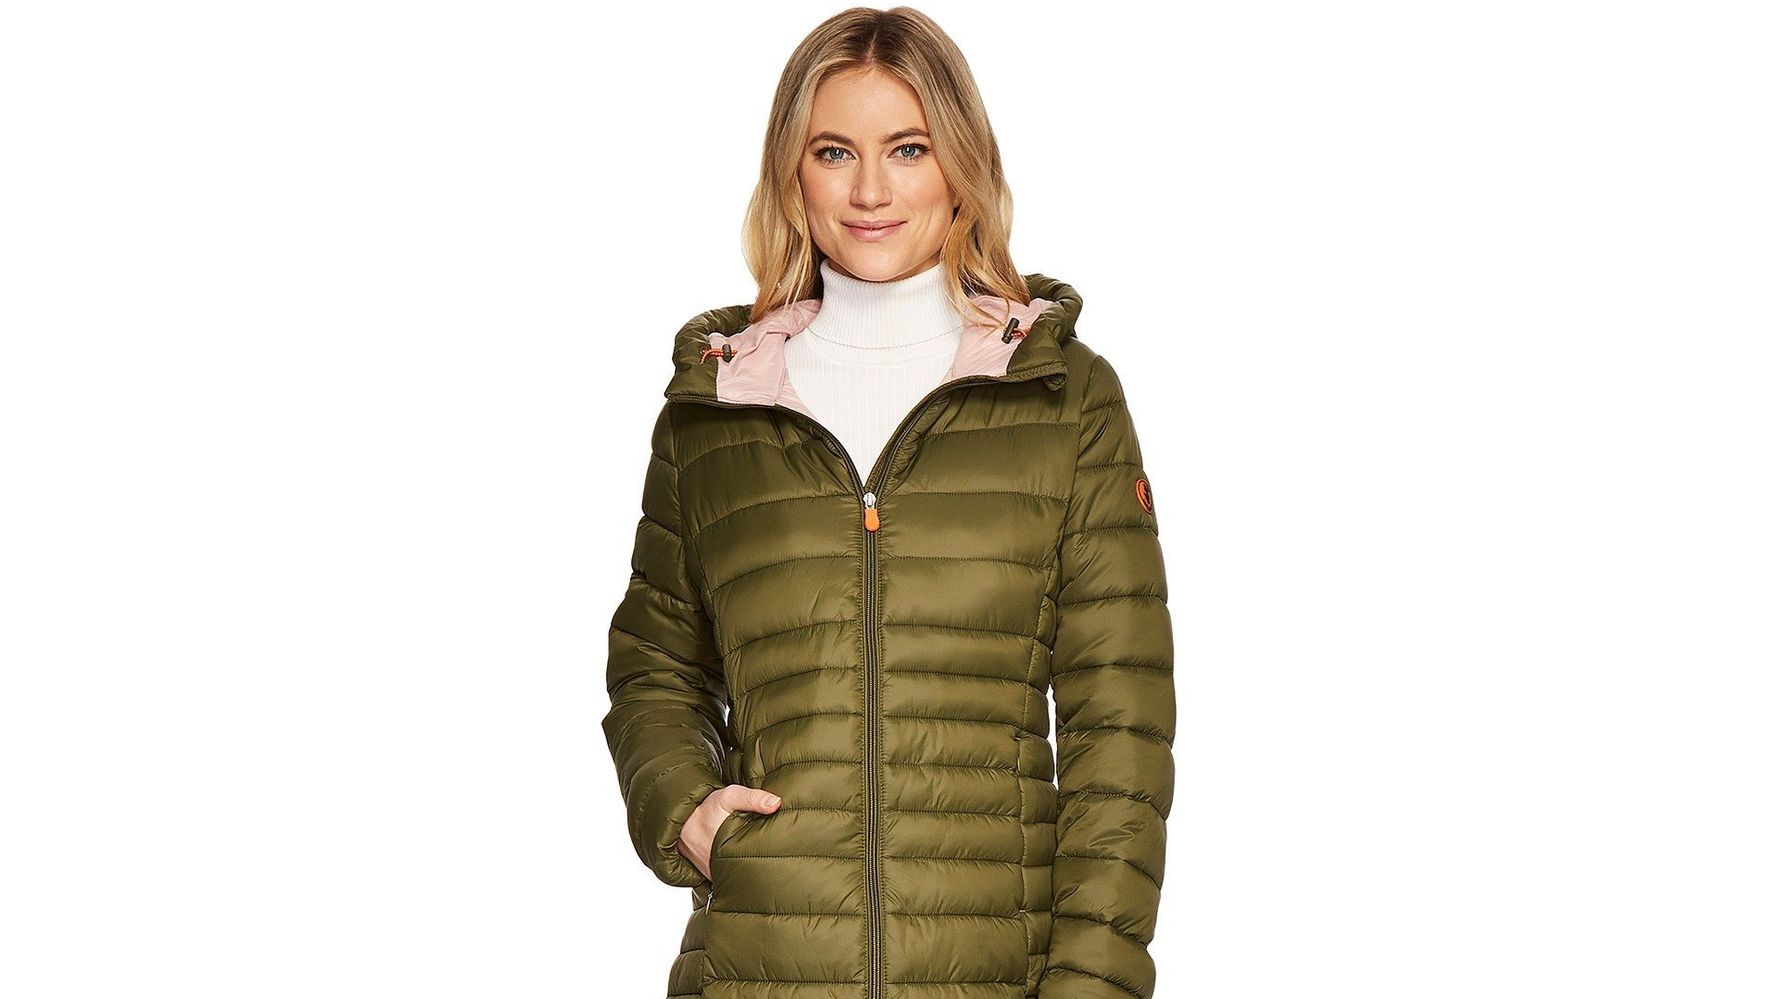 e4666ed587f 12 Cruelty-Free Coats That'll Keep You Warm Without Down And Fur ...